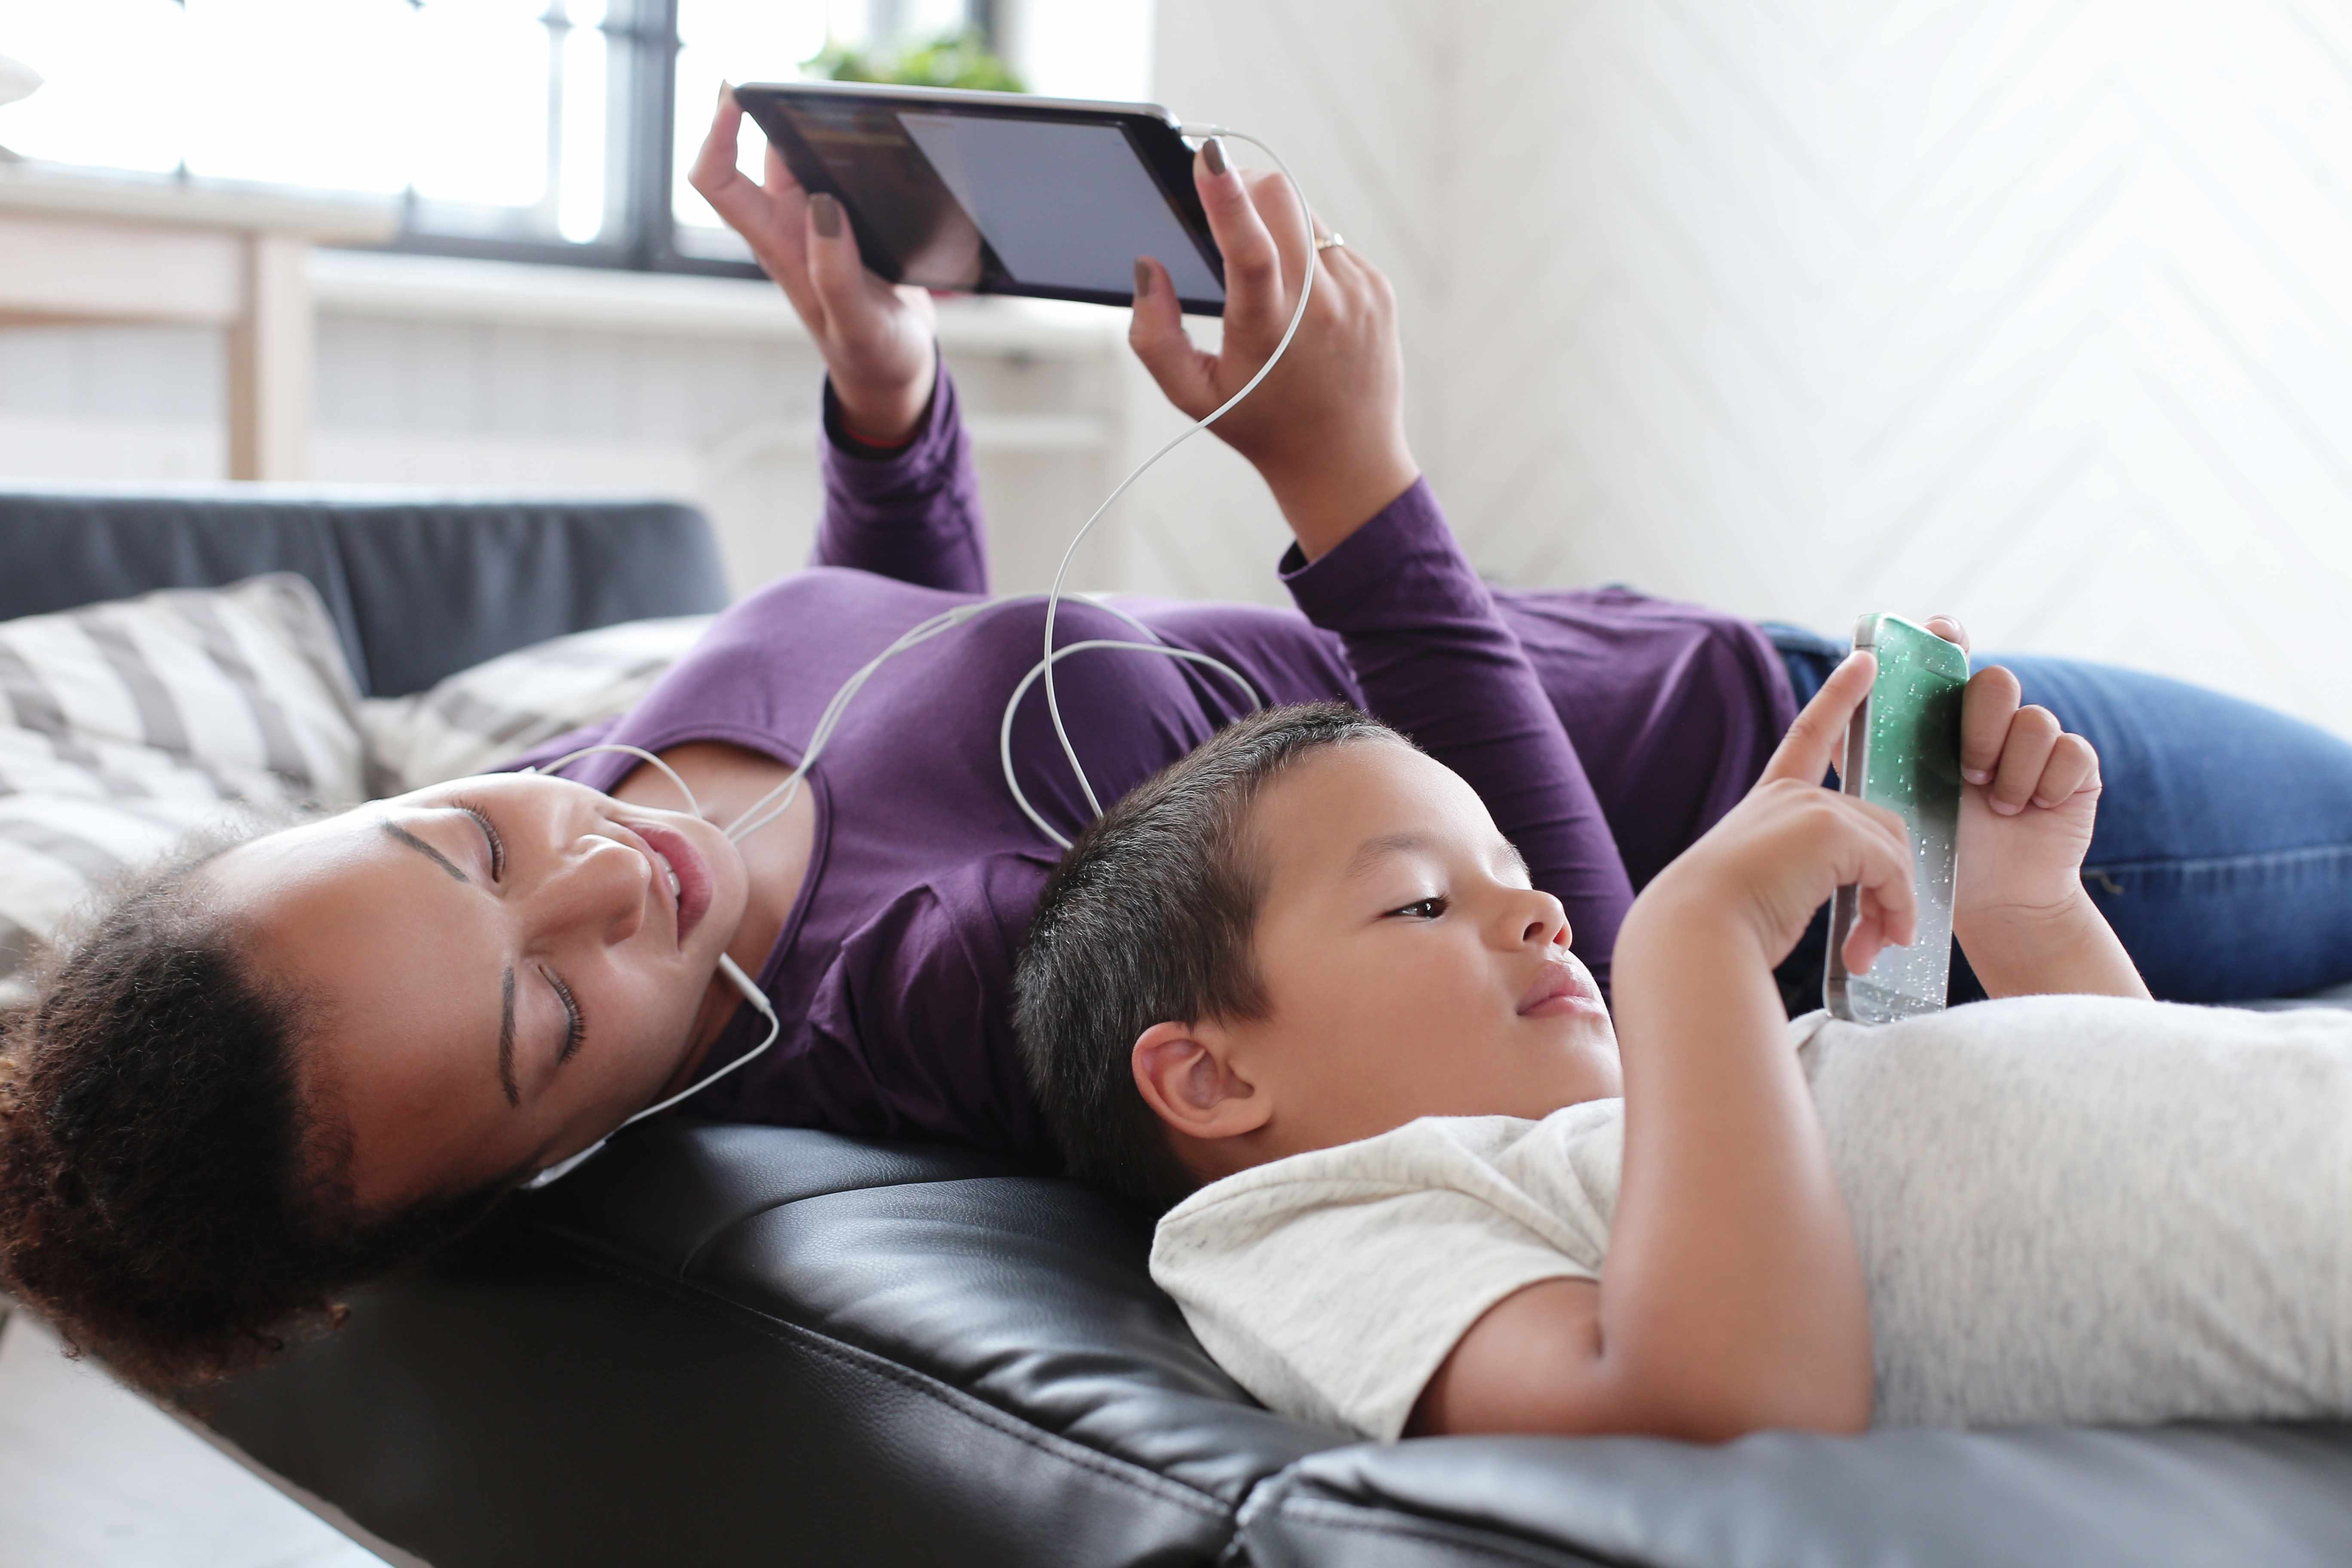 young people using social media with smart phone and iPad